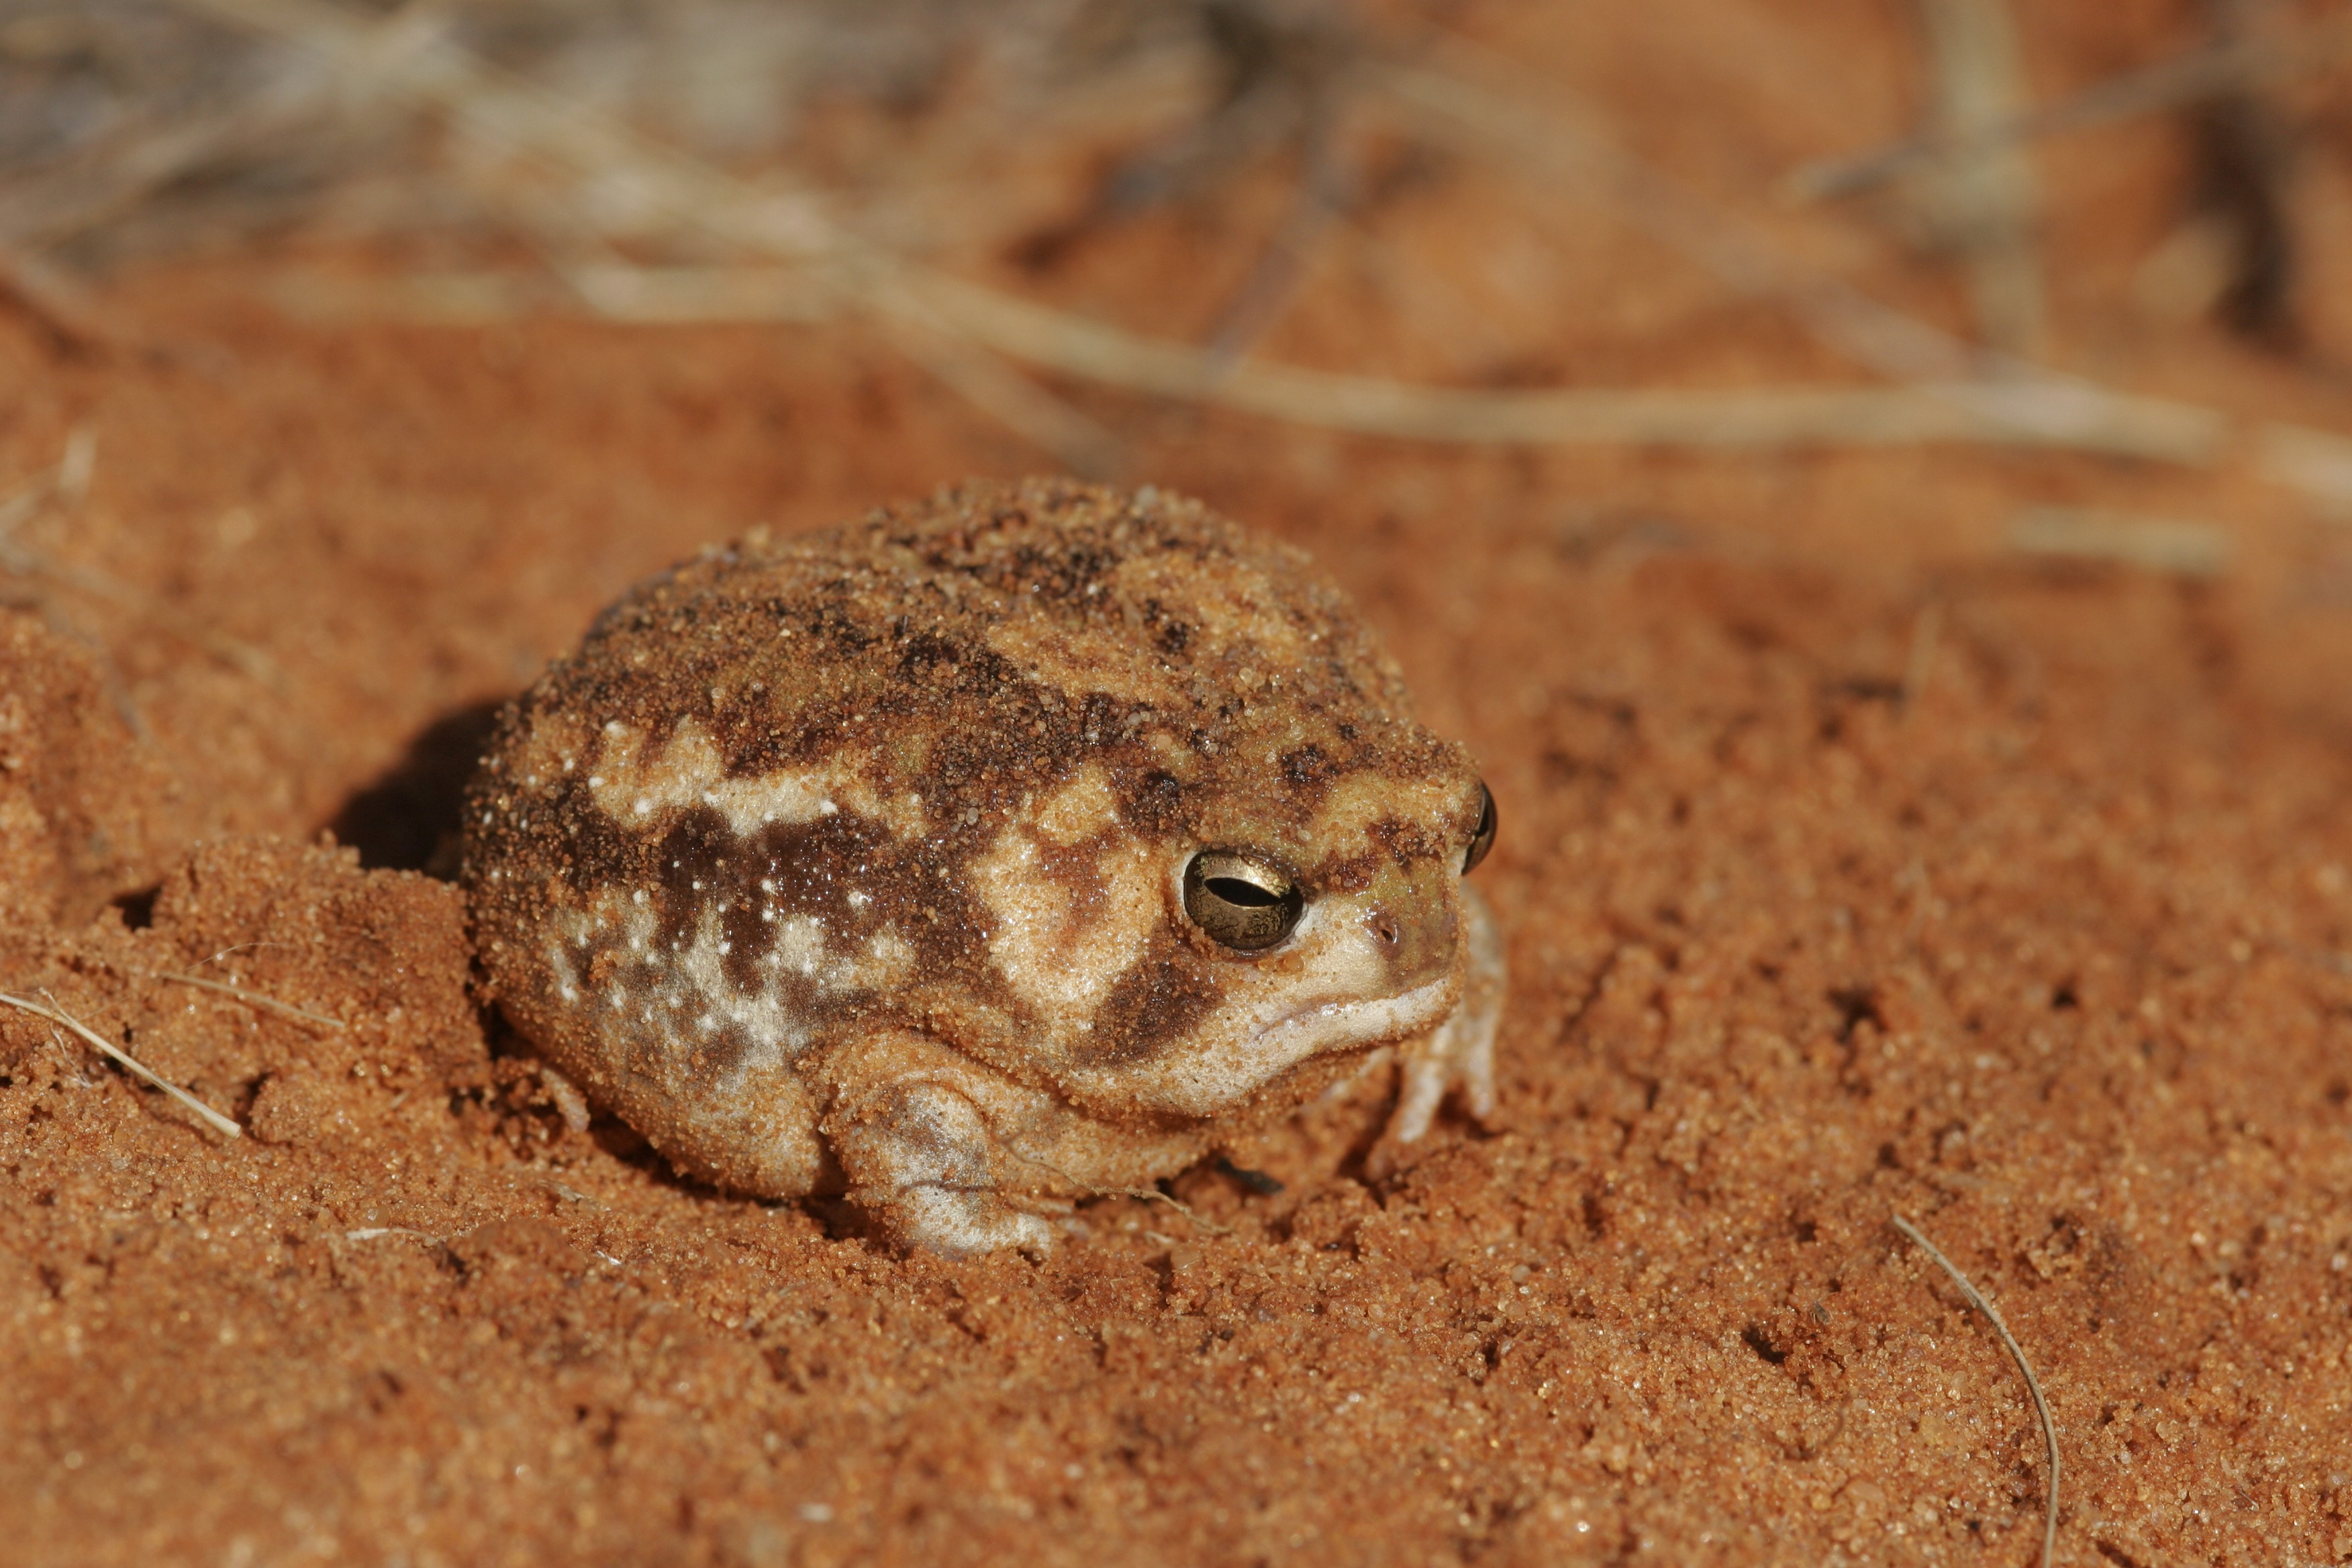 a grumpy looking frog sits in a bit of sand